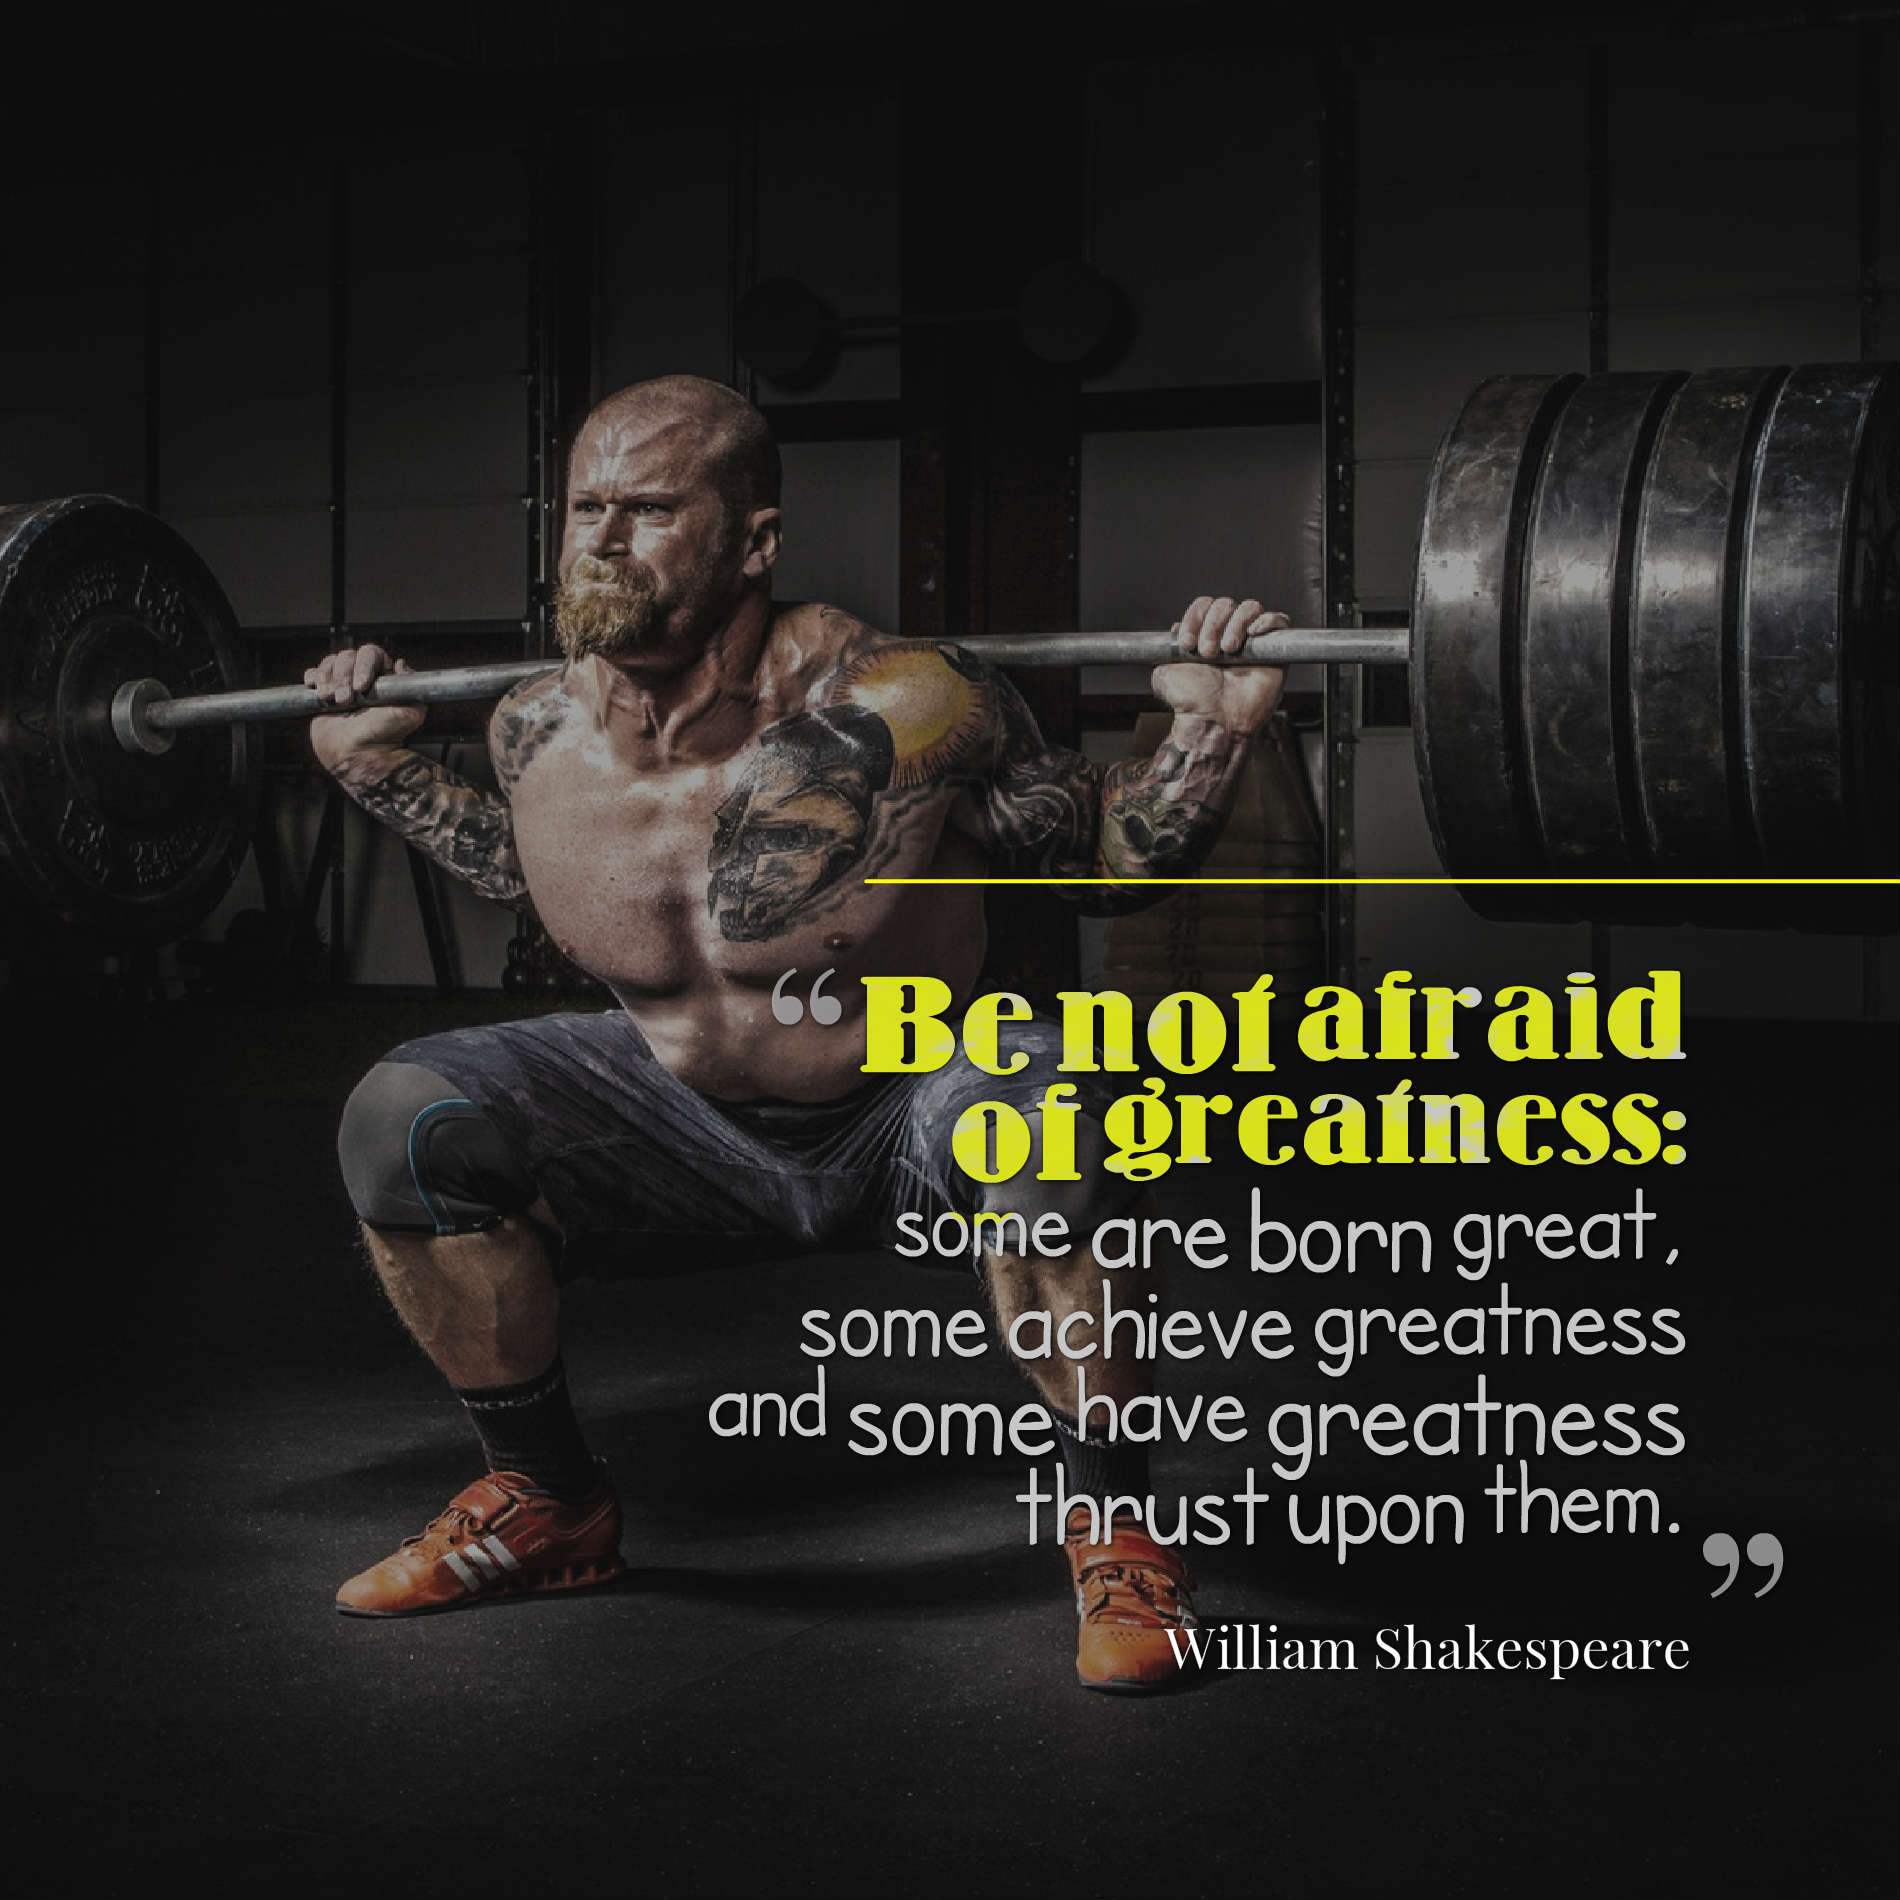 hi-res image of Be not afraid of greatness: some are born great, some achieve greatness and some have greatness thrust upon them.